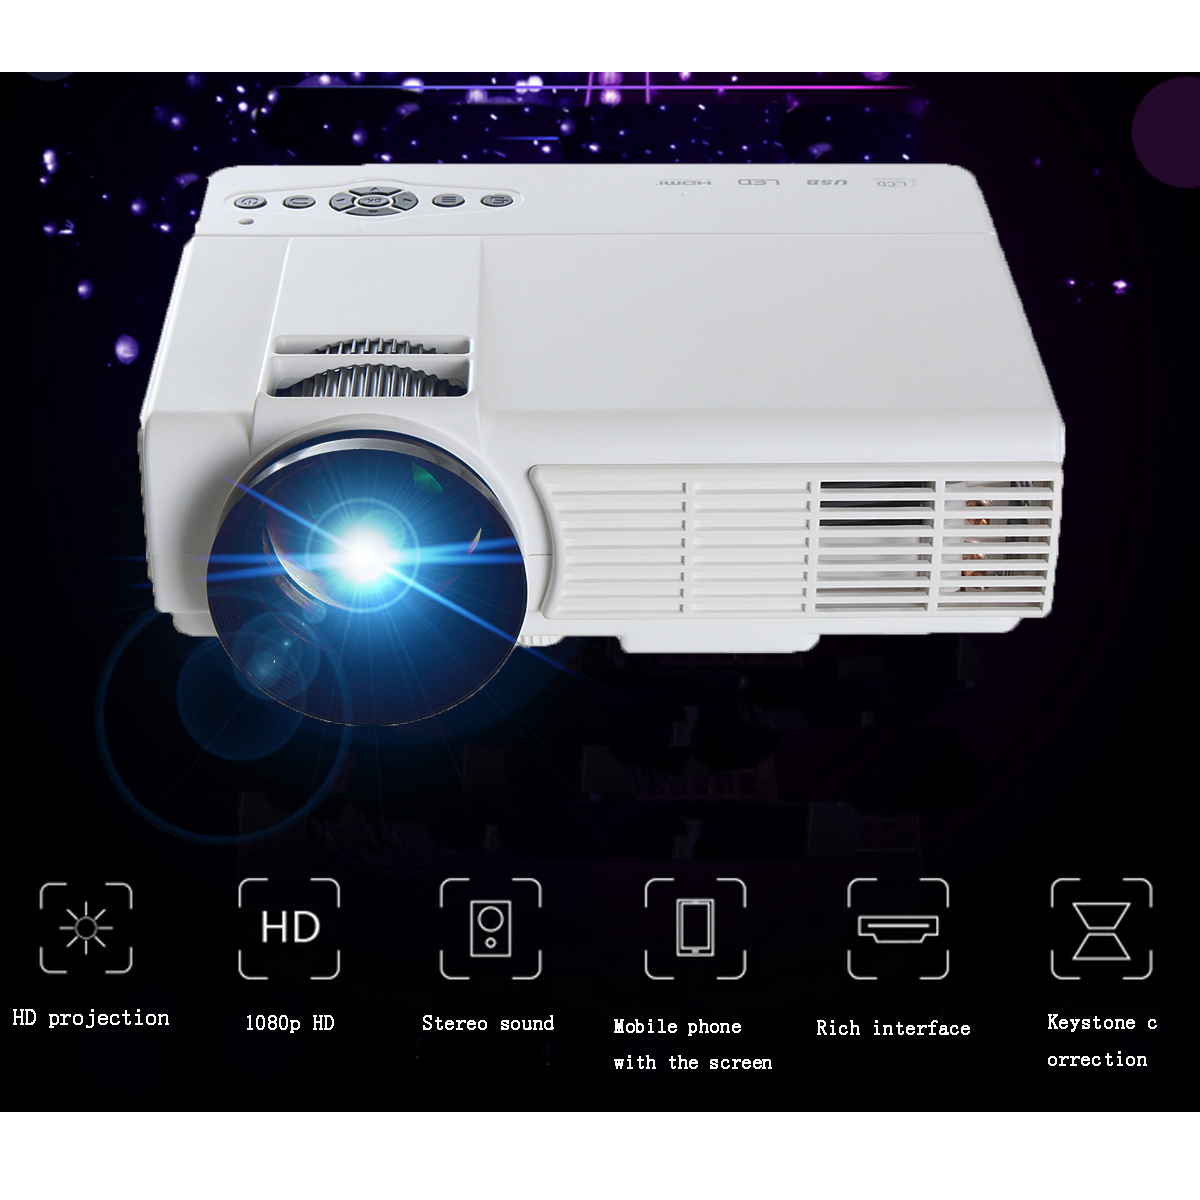 Cl720 3000 Lumens Hd Home Theater Multimedia Lcd Projector: Powerful Q5 3d Hd 1080p 3000 Lumens 800 X 480 Resolution